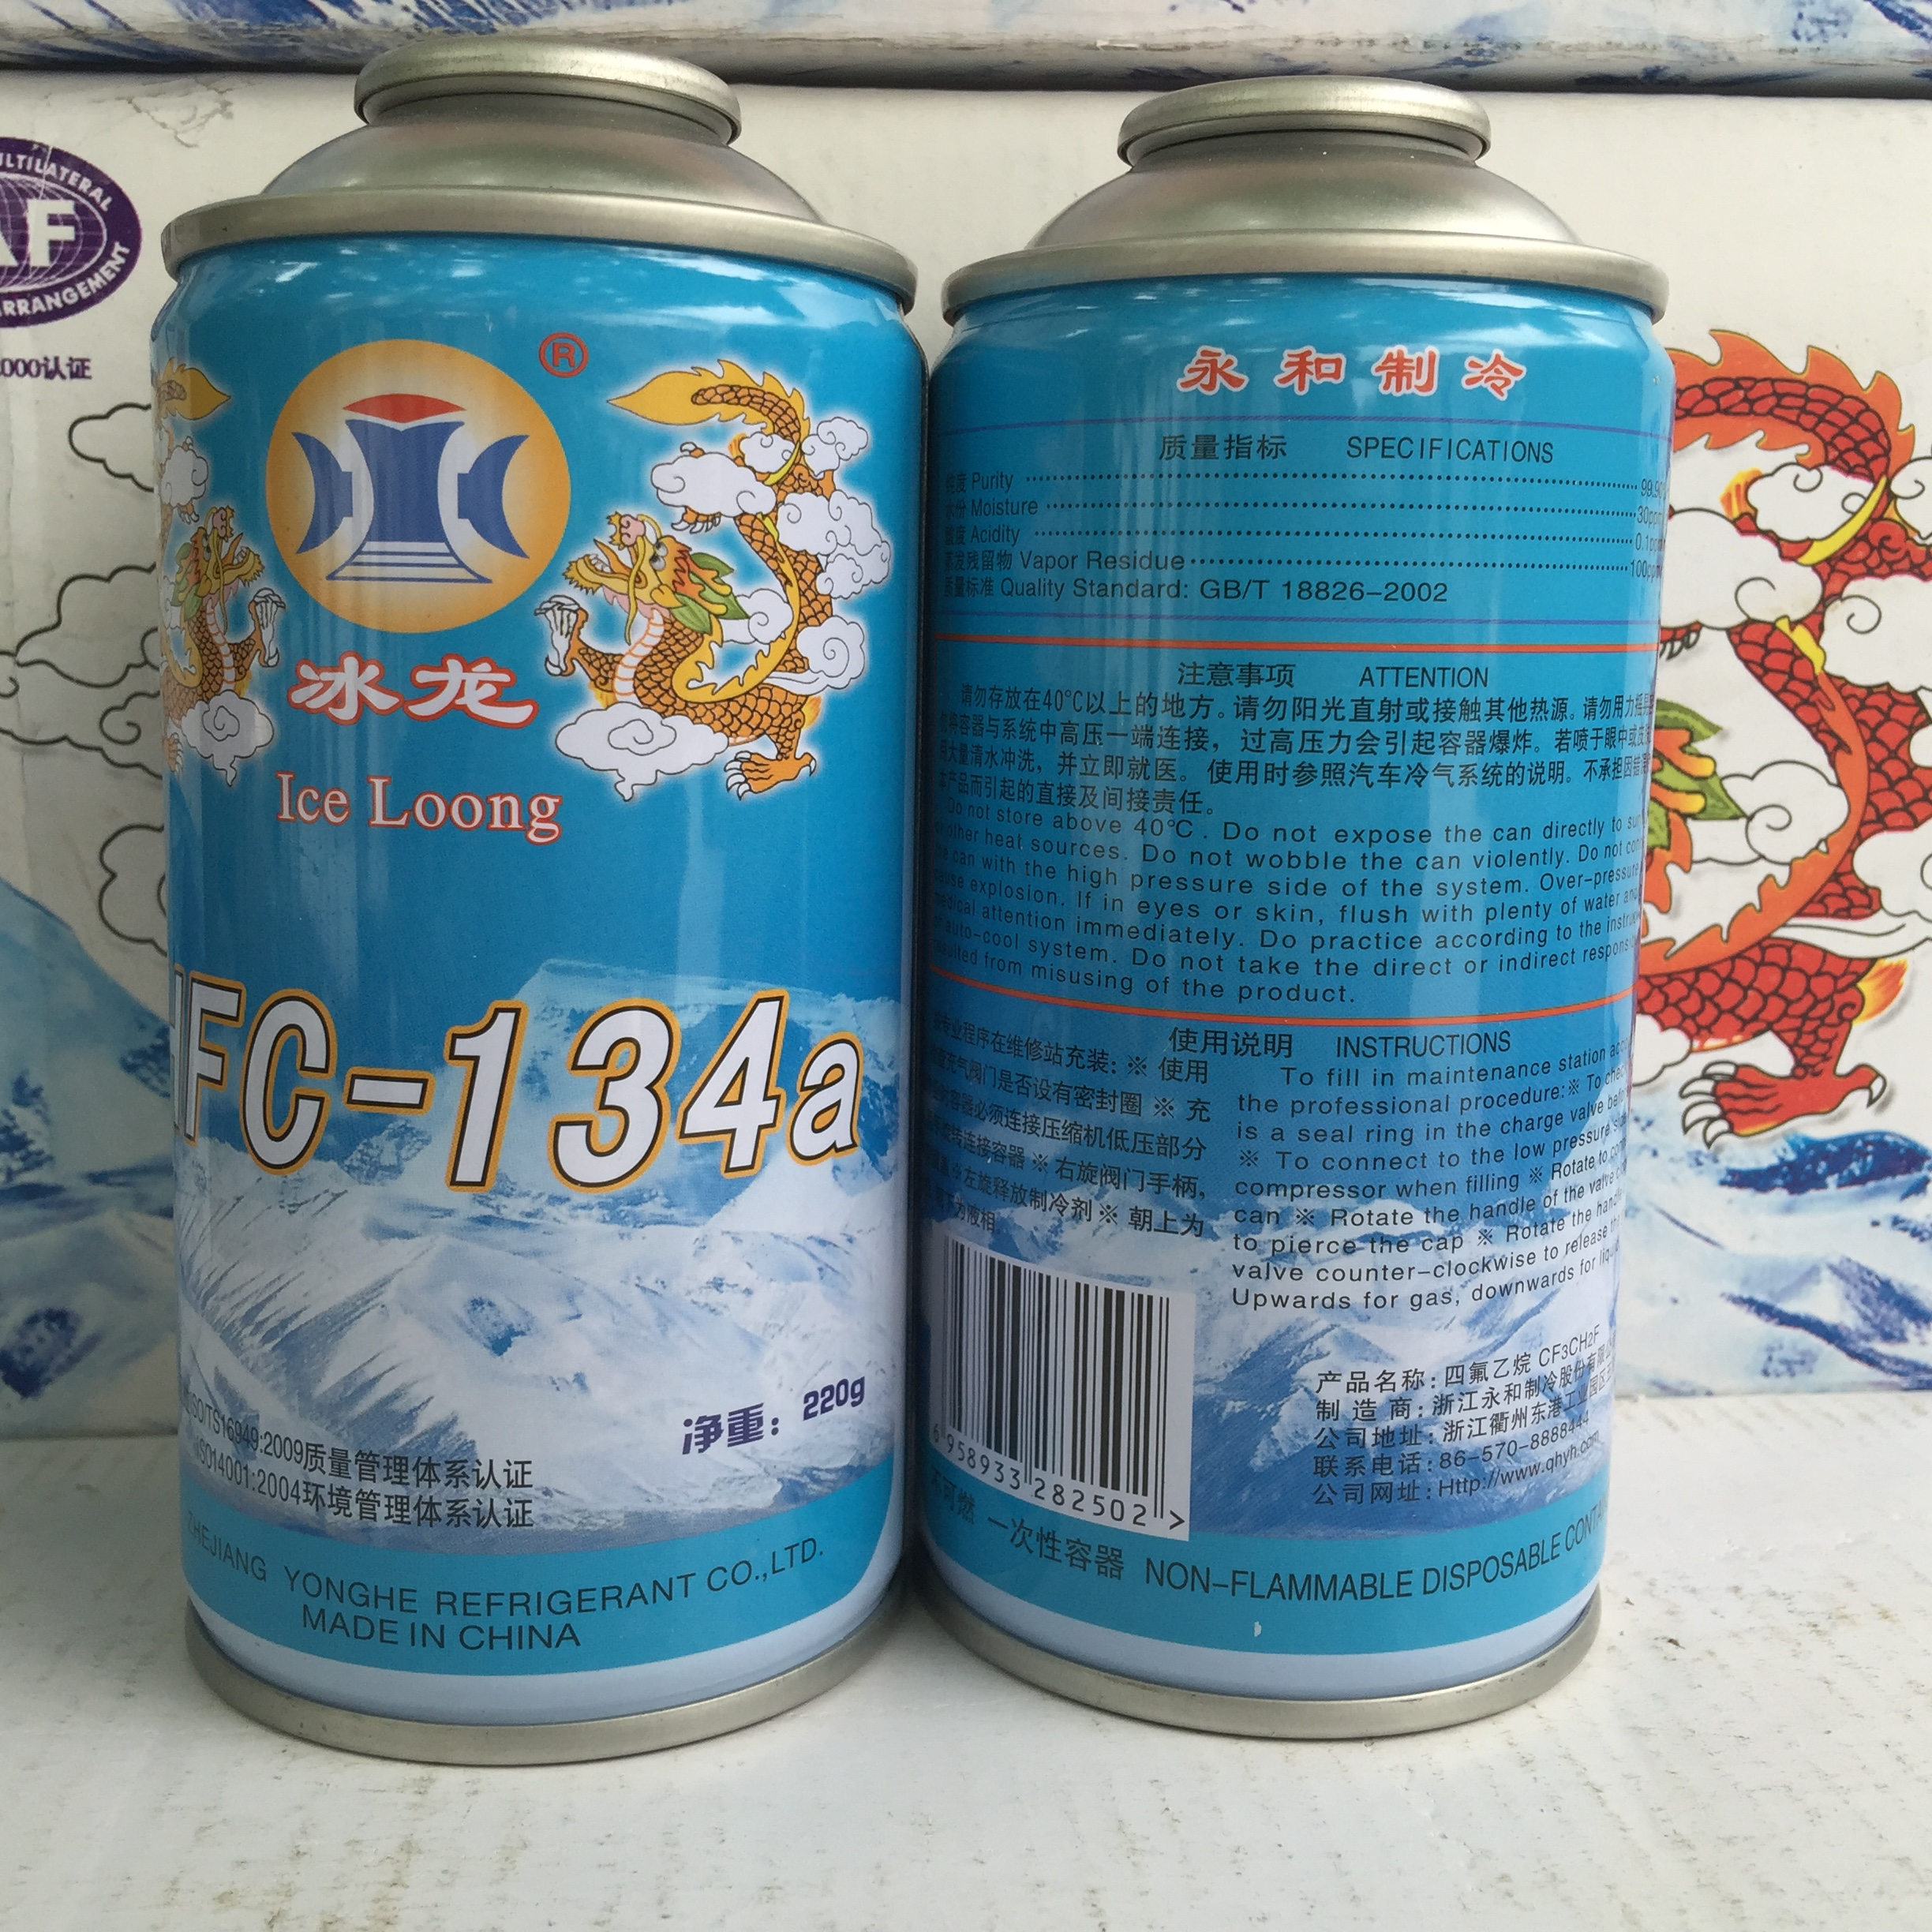 Authentic ice R134a300 grams environmental protection refrigerant refrigerant Freon free refrigerator refrigerant in automobile air conditioning